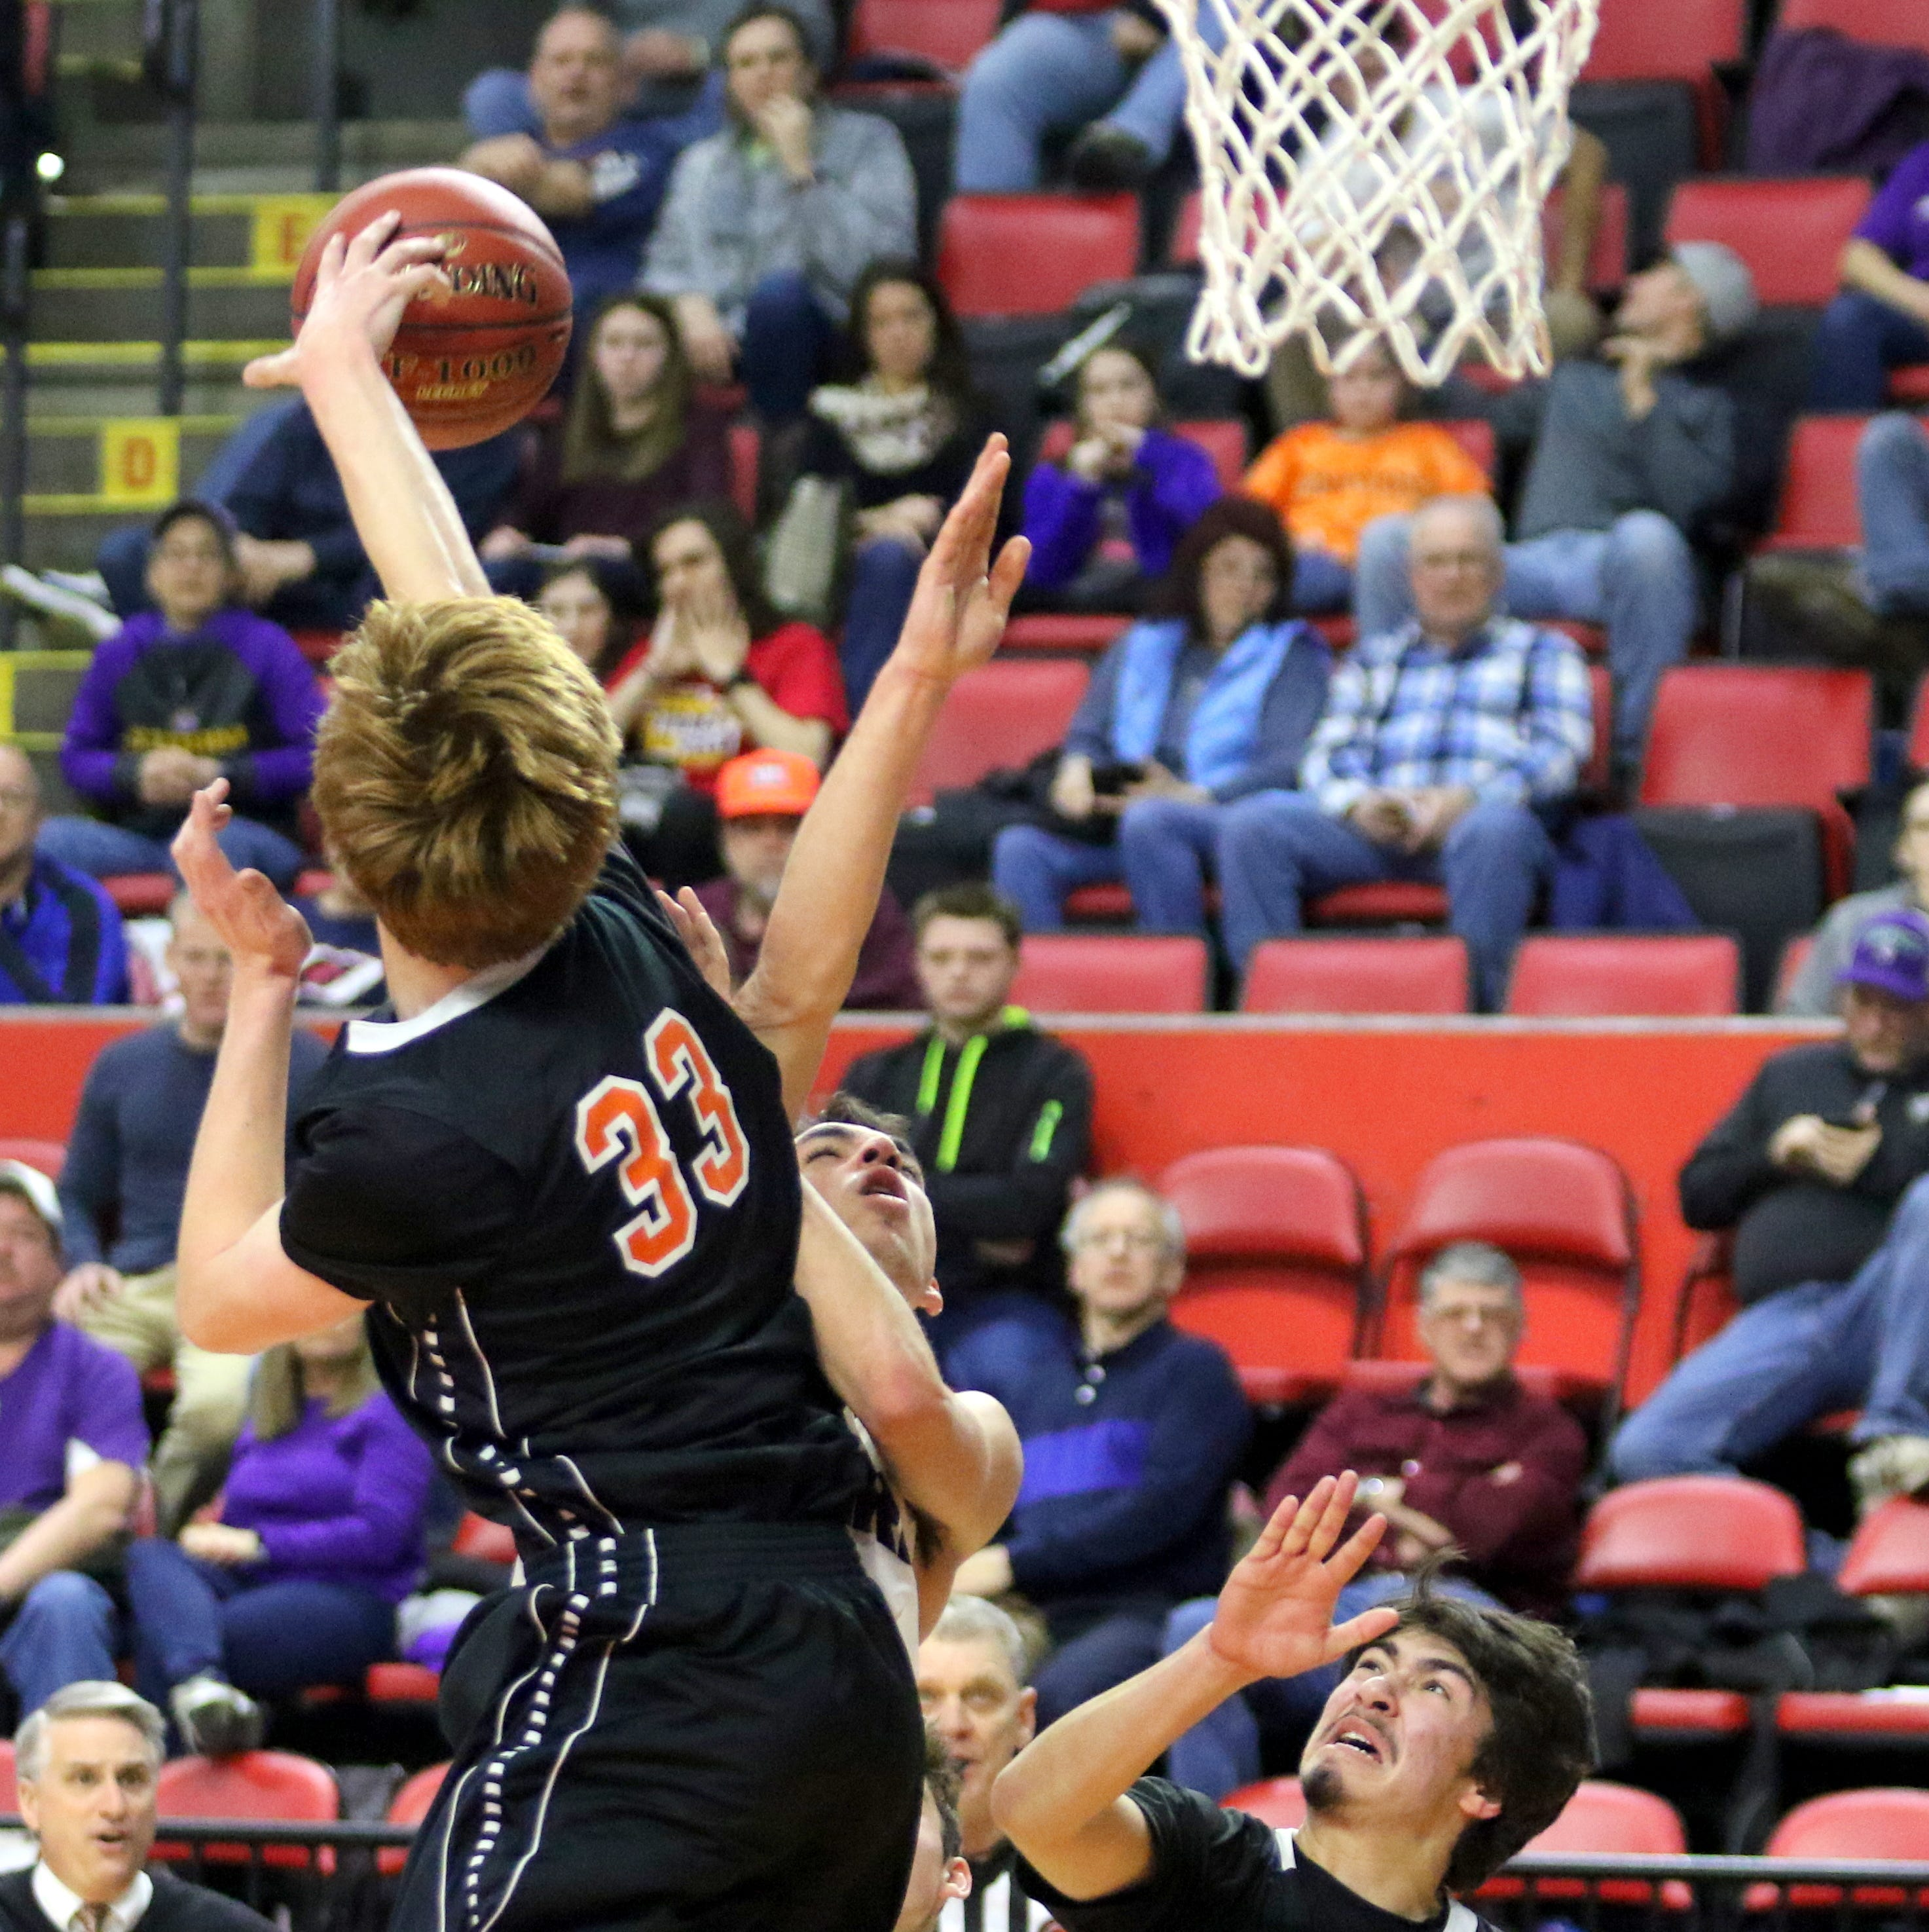 Shooting woes derail Unadilla Valley boys against Cooperstown in state quarterfinal